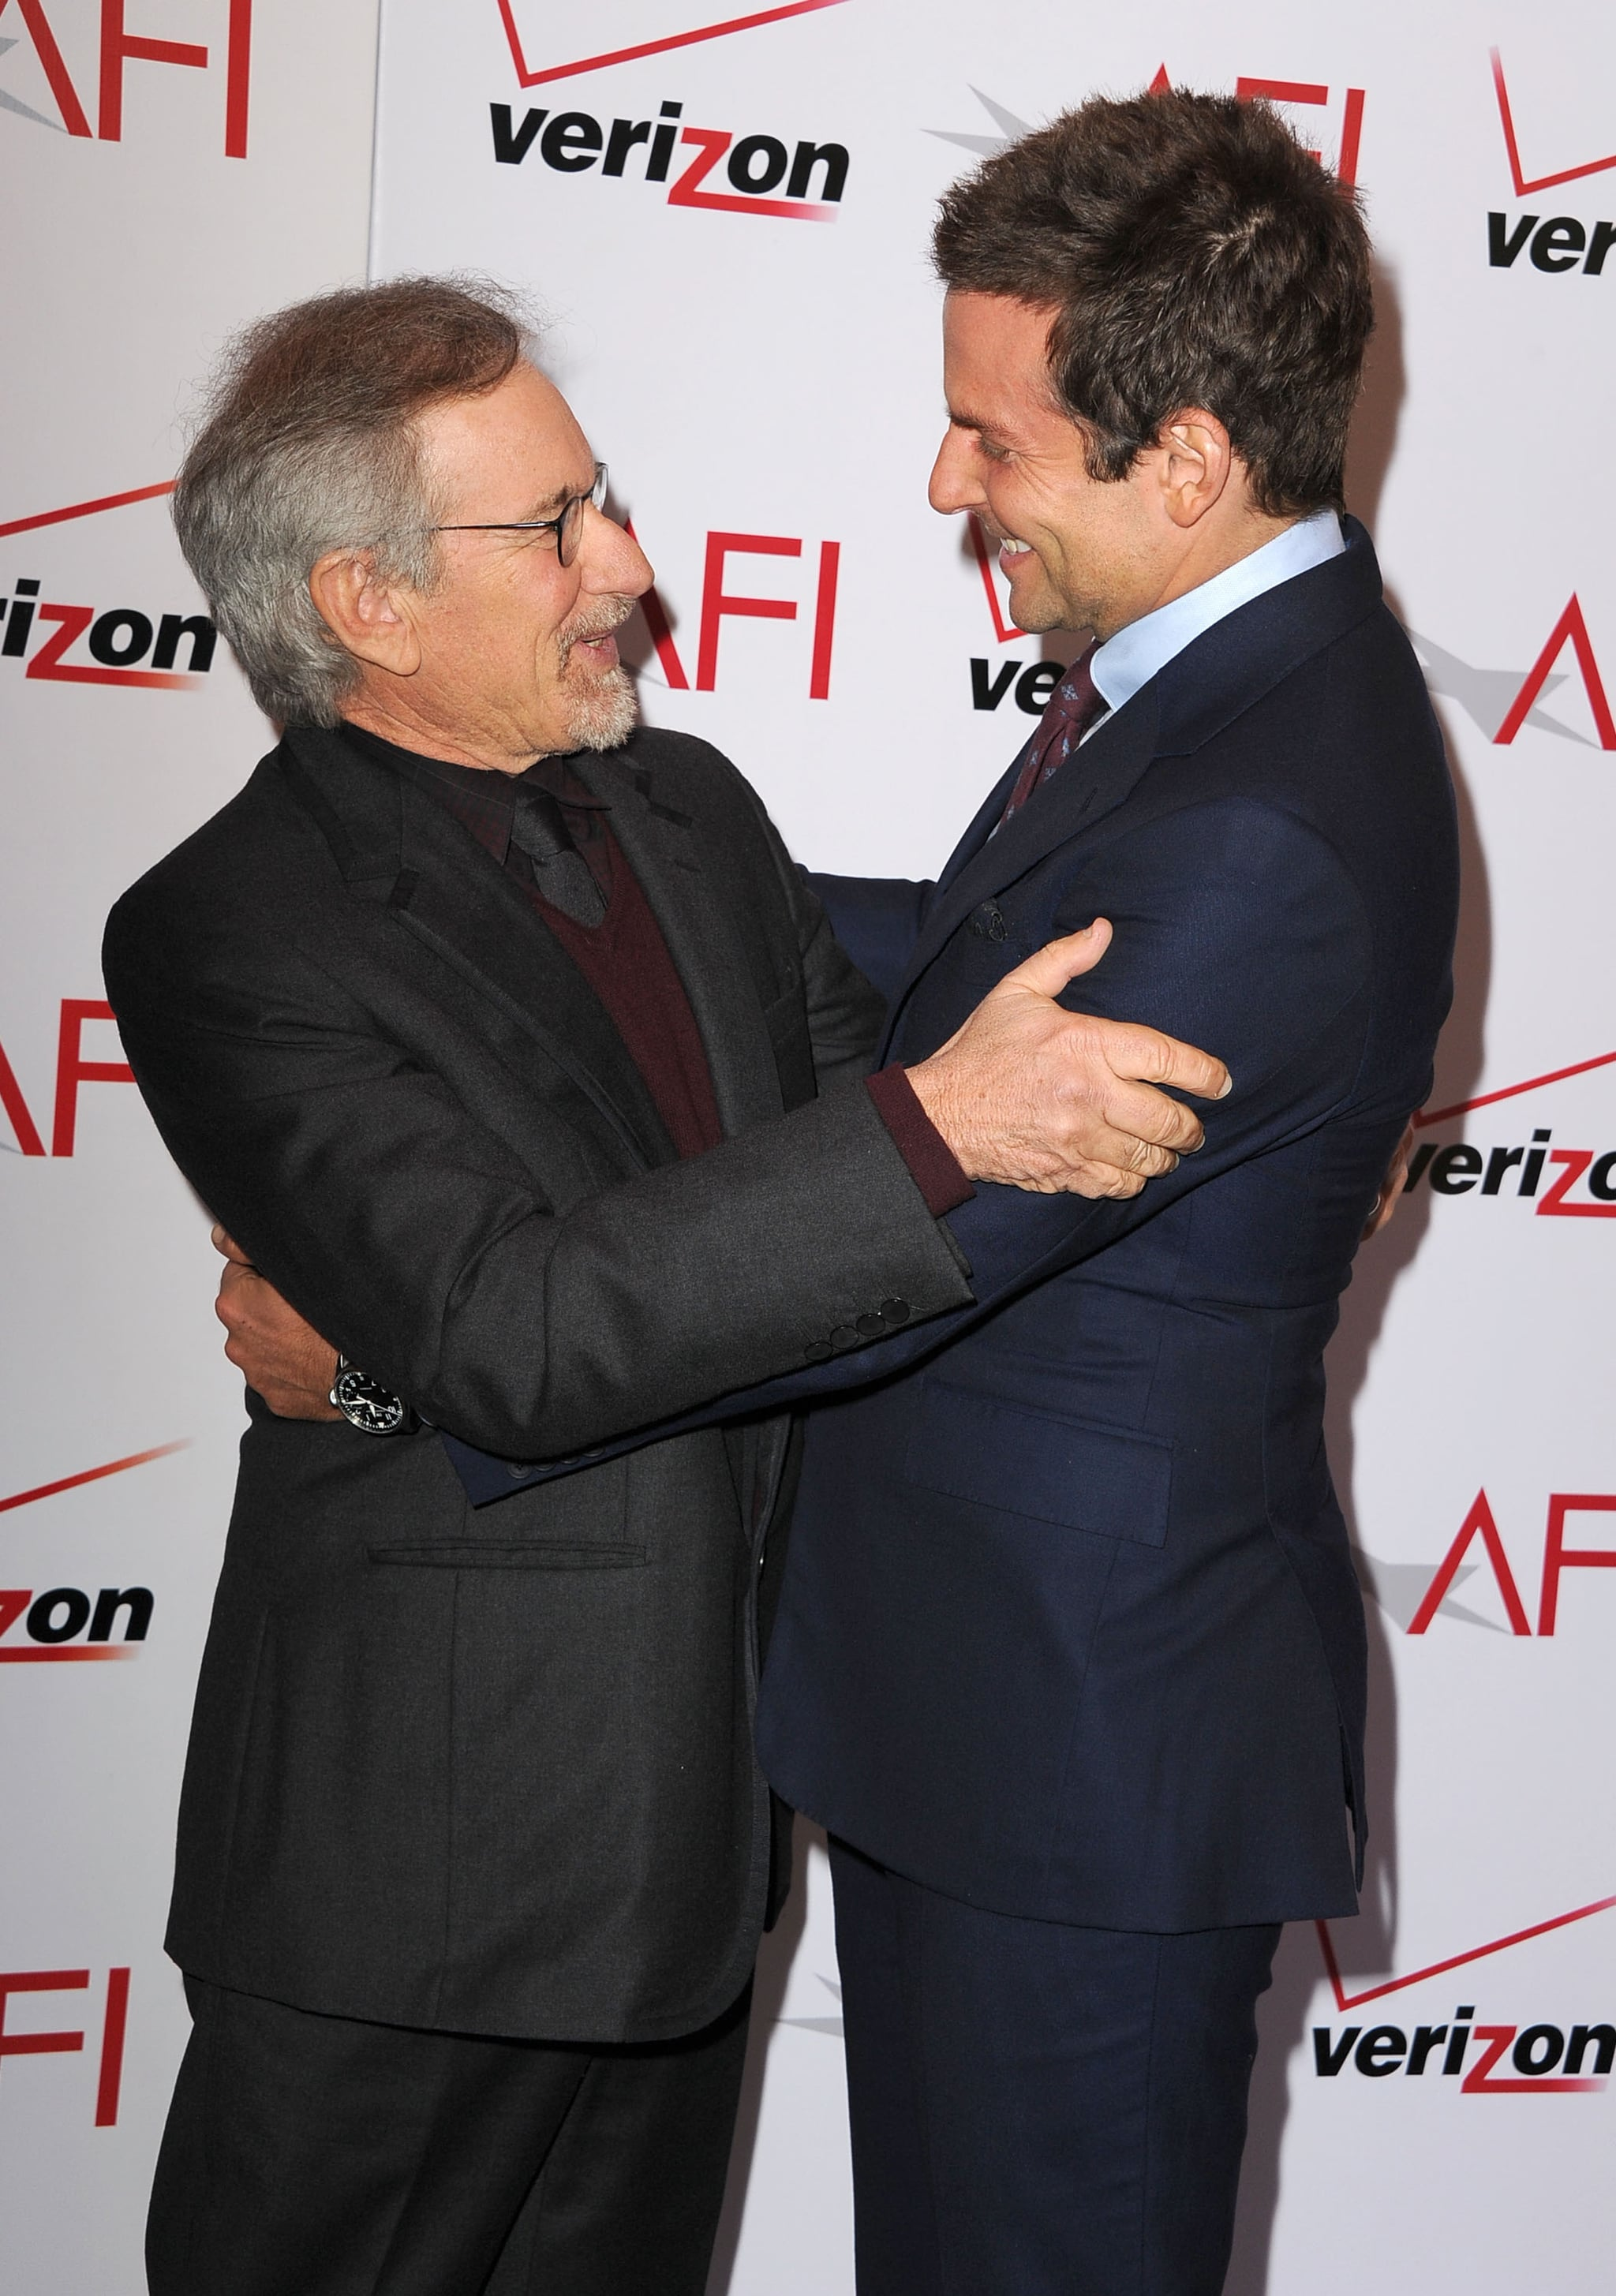 And Before That, Bradley Showed His Love For Steven Spielberg at the AFI Luncheon